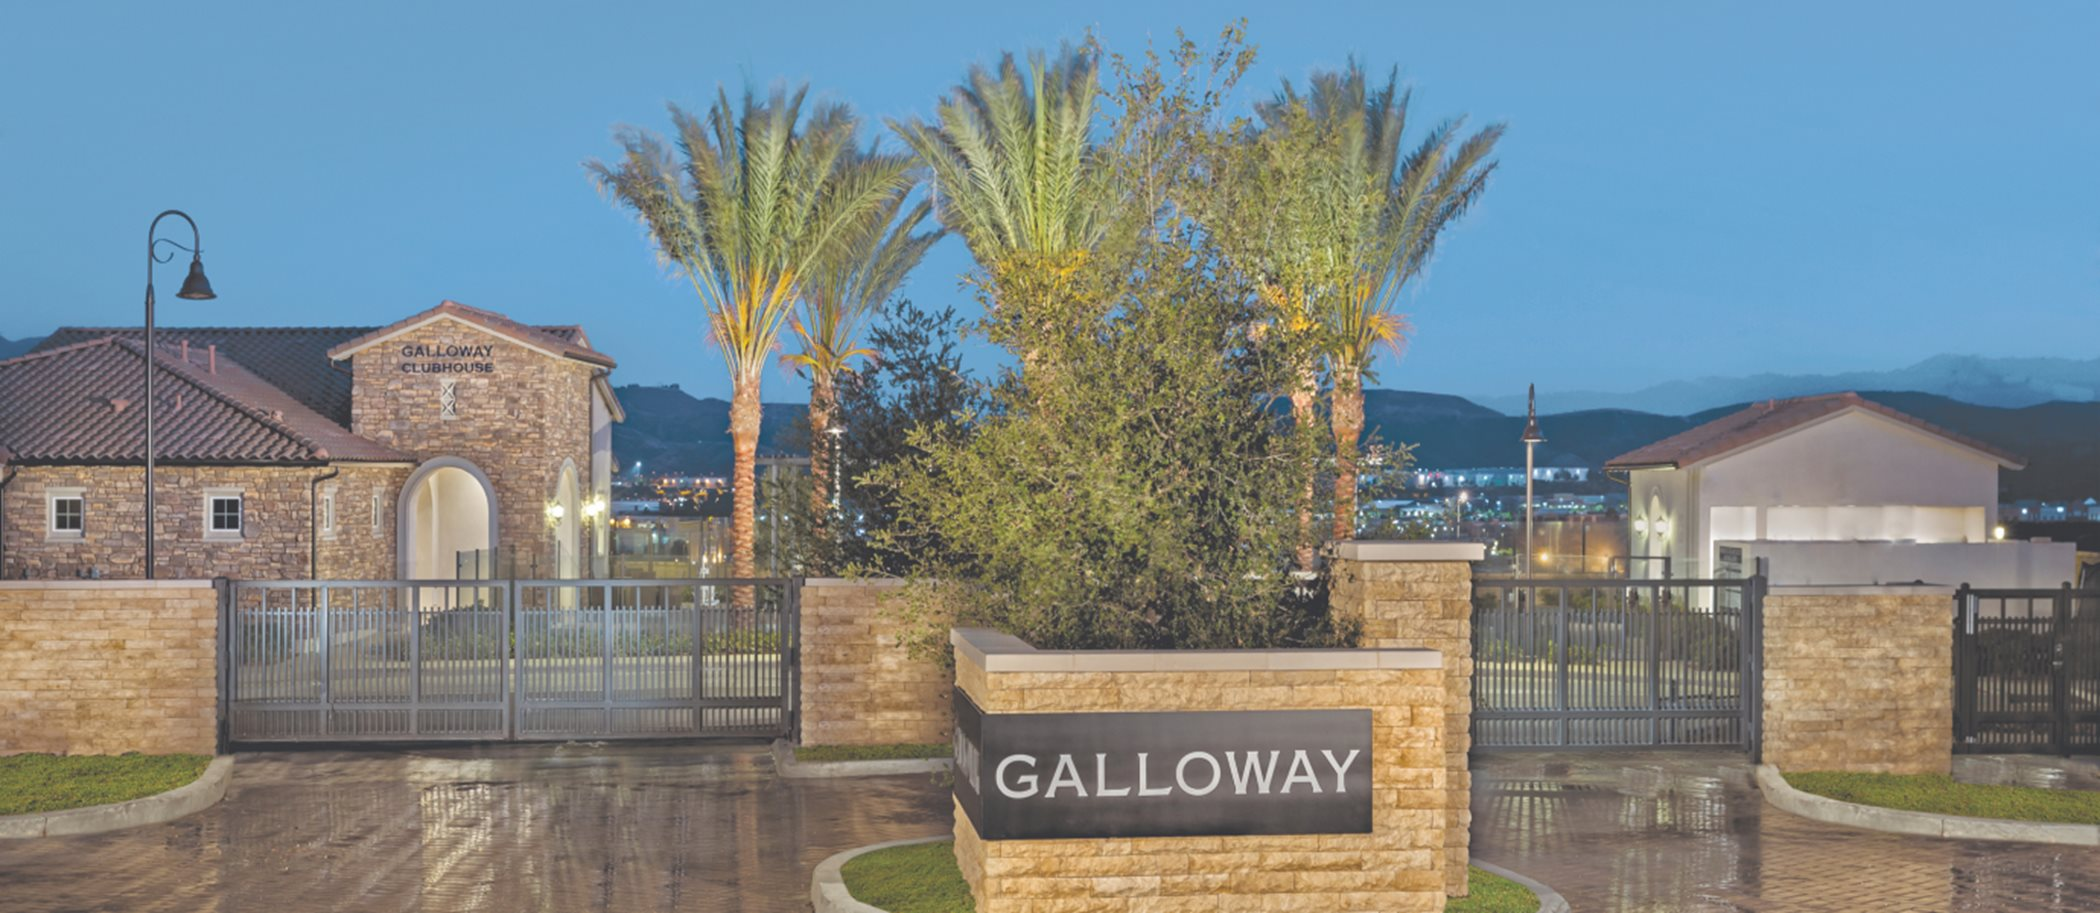 Five Knolls at Galloway gated entrance